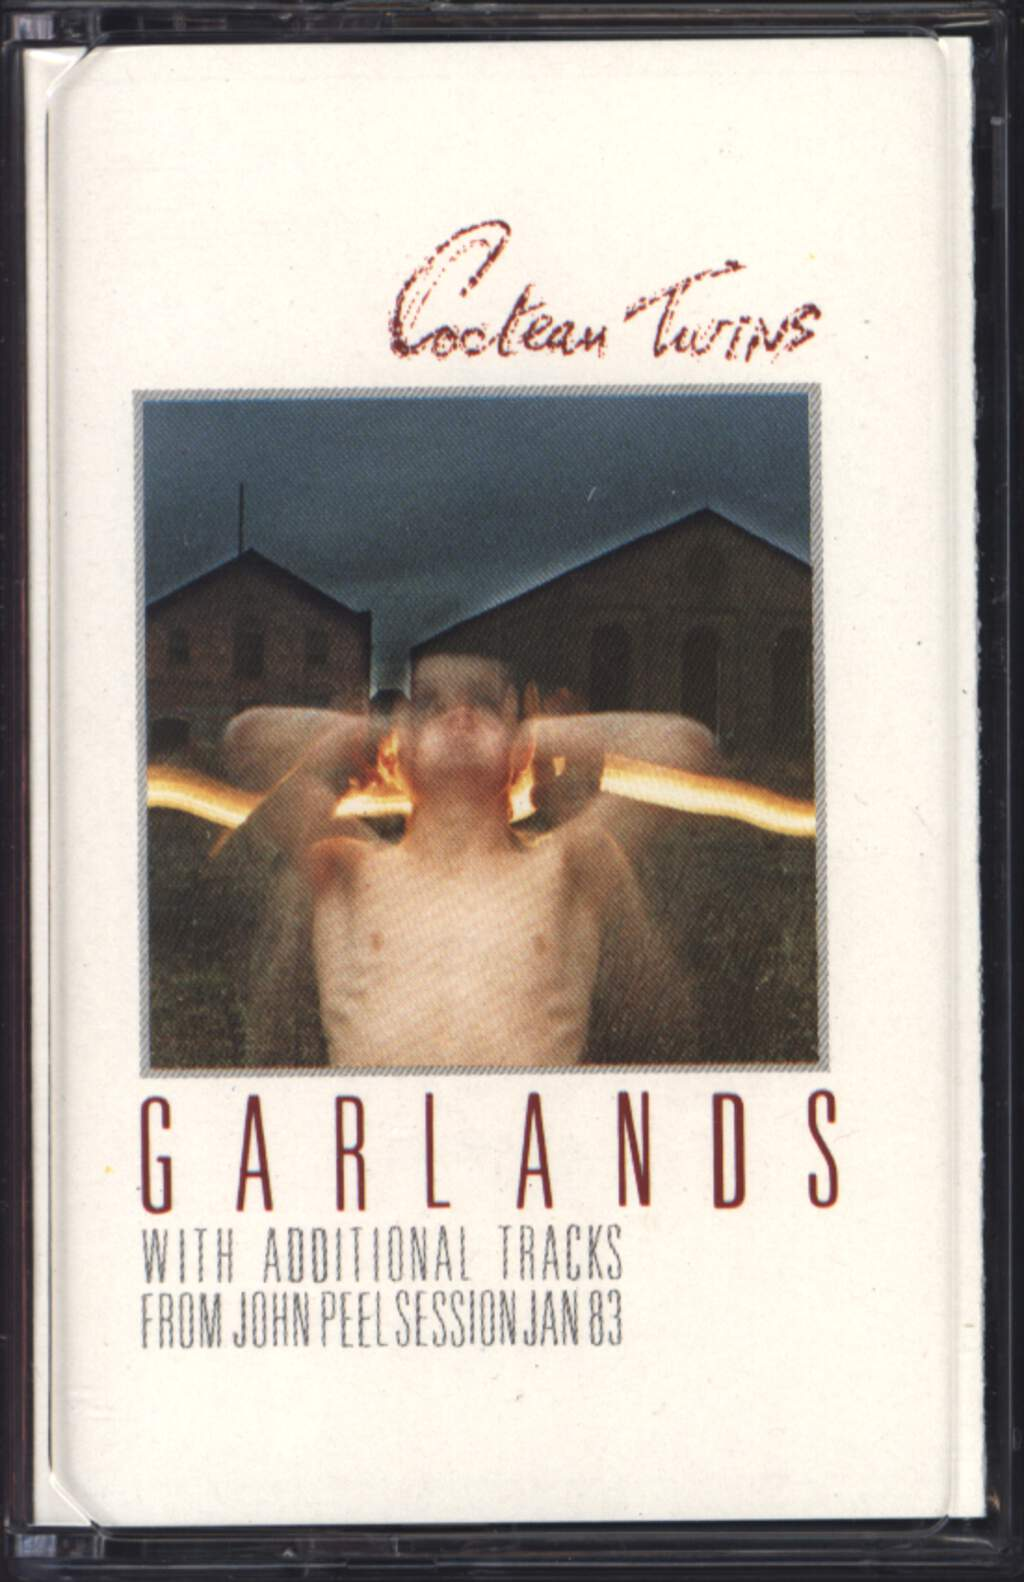 Cocteau Twins Garlands